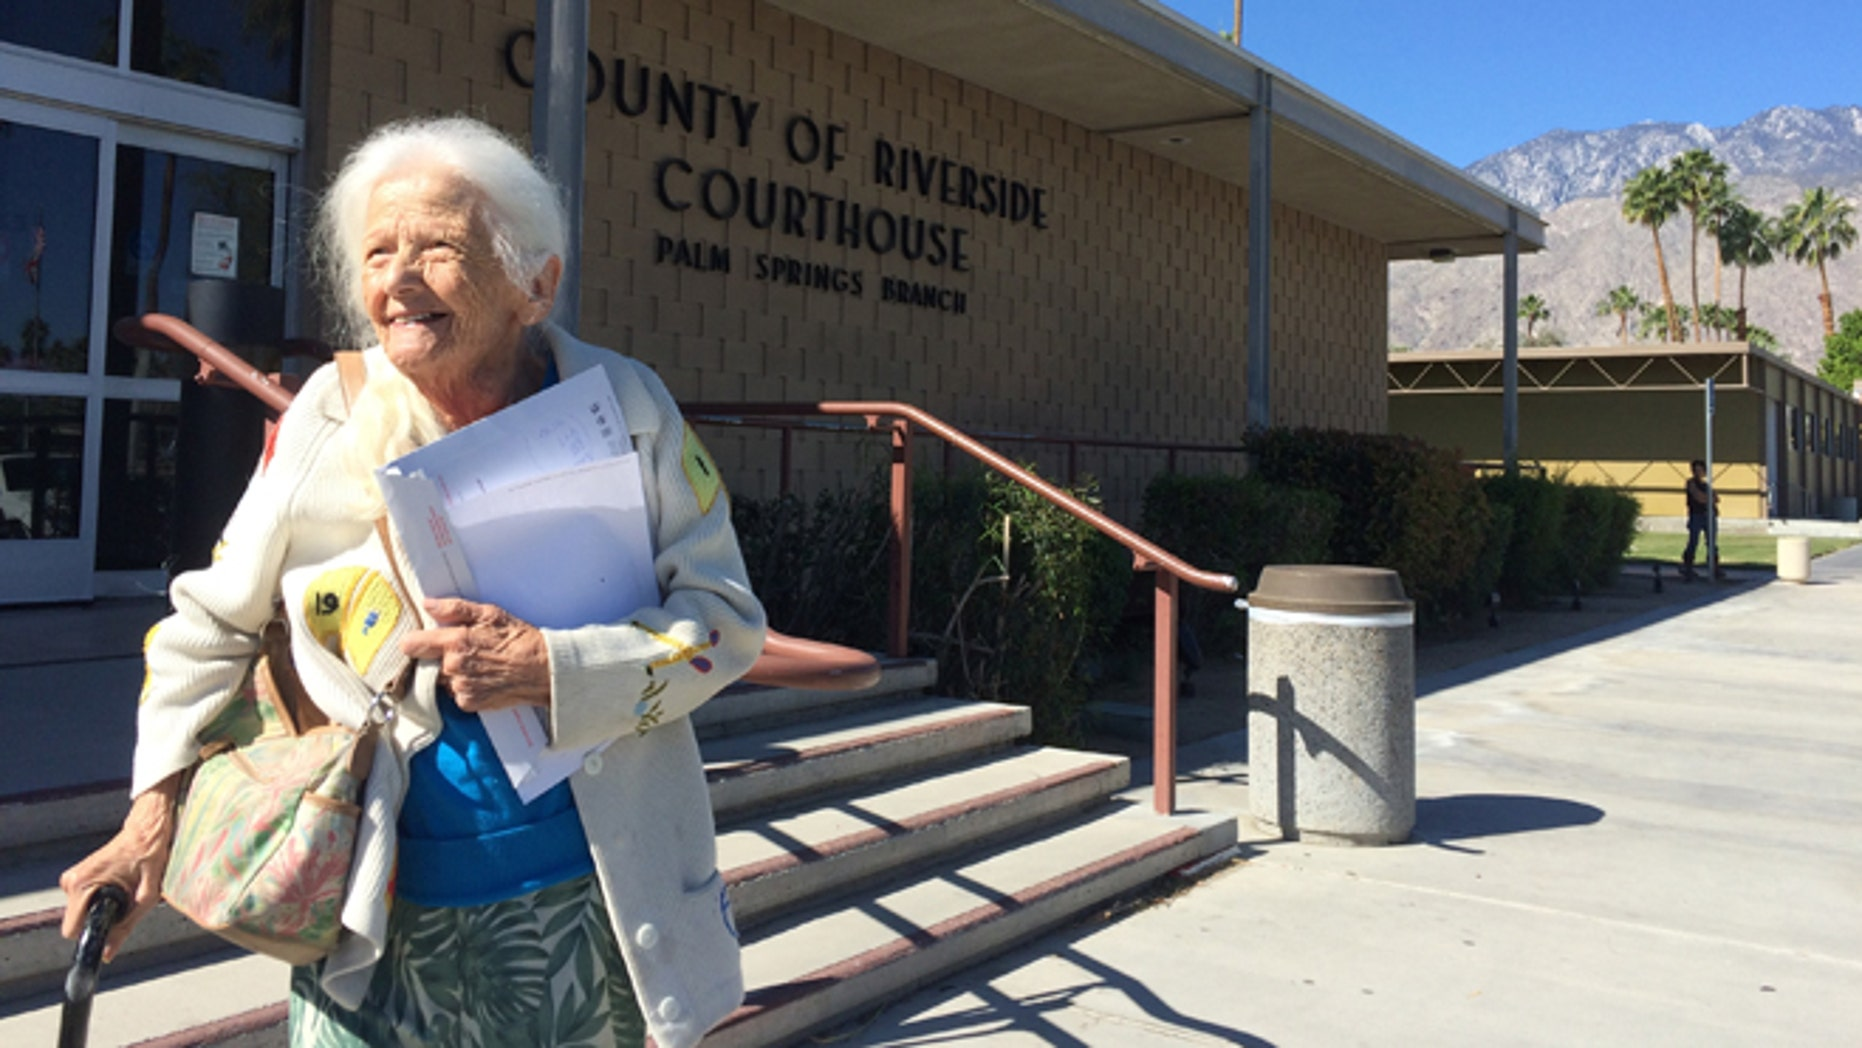 This April 1, 2016 photo Evelyn Heller, who faced eviction at the age of 100, leaves the Palm Springs courthouse after losing an eviction trial. Heller, who was evicted from her apartment, has a new home in the Southern California desert after a newspaper reported on her plight and motivational speaker Tony Robbins and a local congressman joined in helping her. (Brett Kelman/Palm Springs Desert Sun via AP) RIVERSIDE PRESS-ENTERPRISE OUT; NO SALES; NO FOREIGN; MANDATORY CREDIT